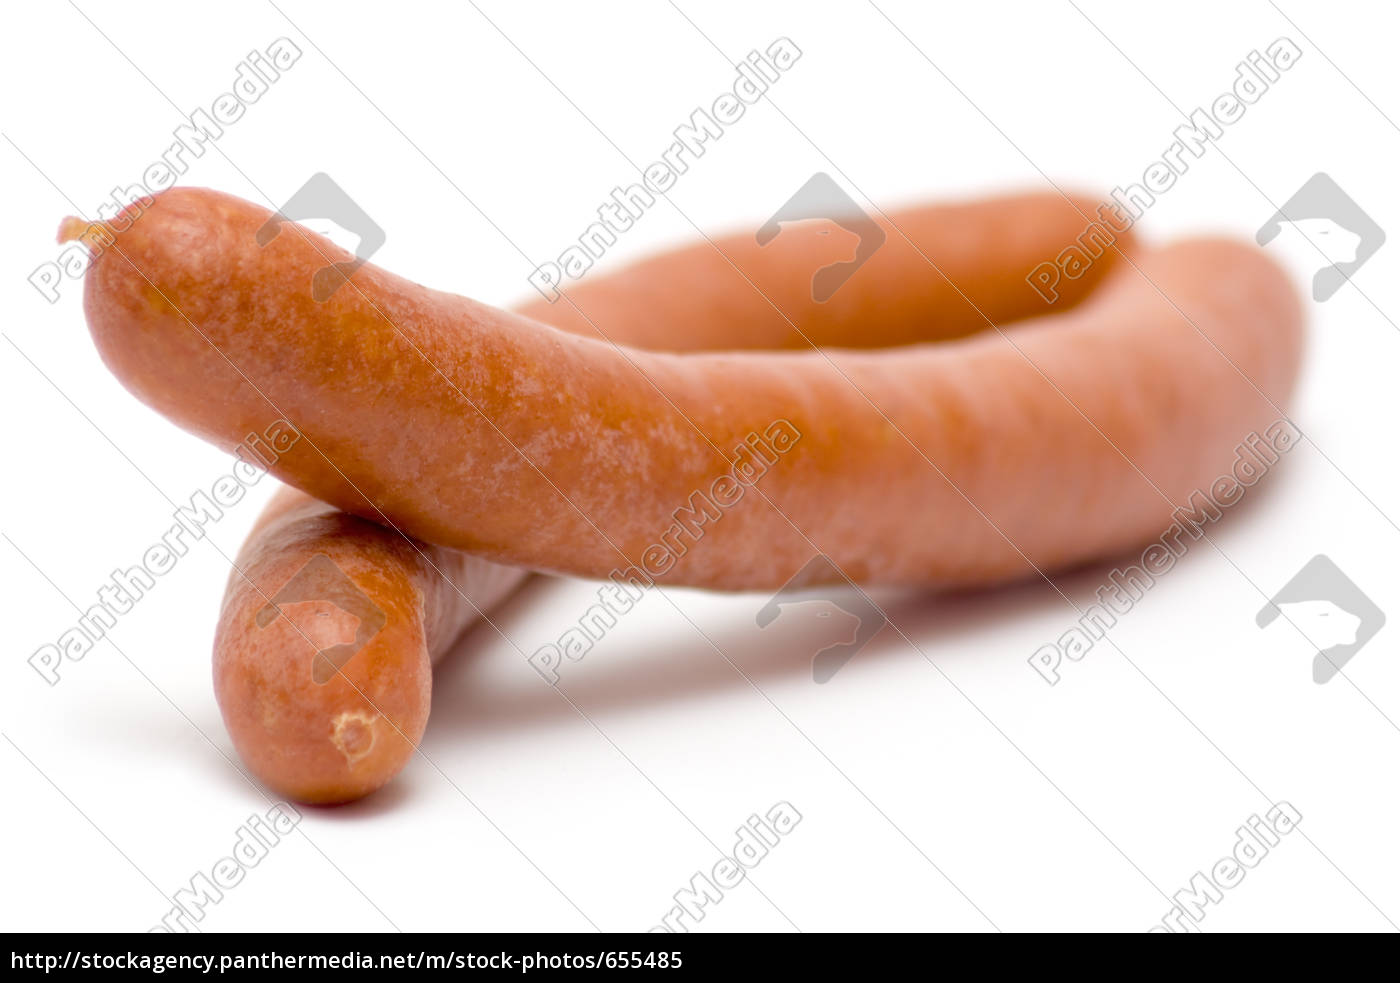 a, pair, of, viennese, sausages - 655485